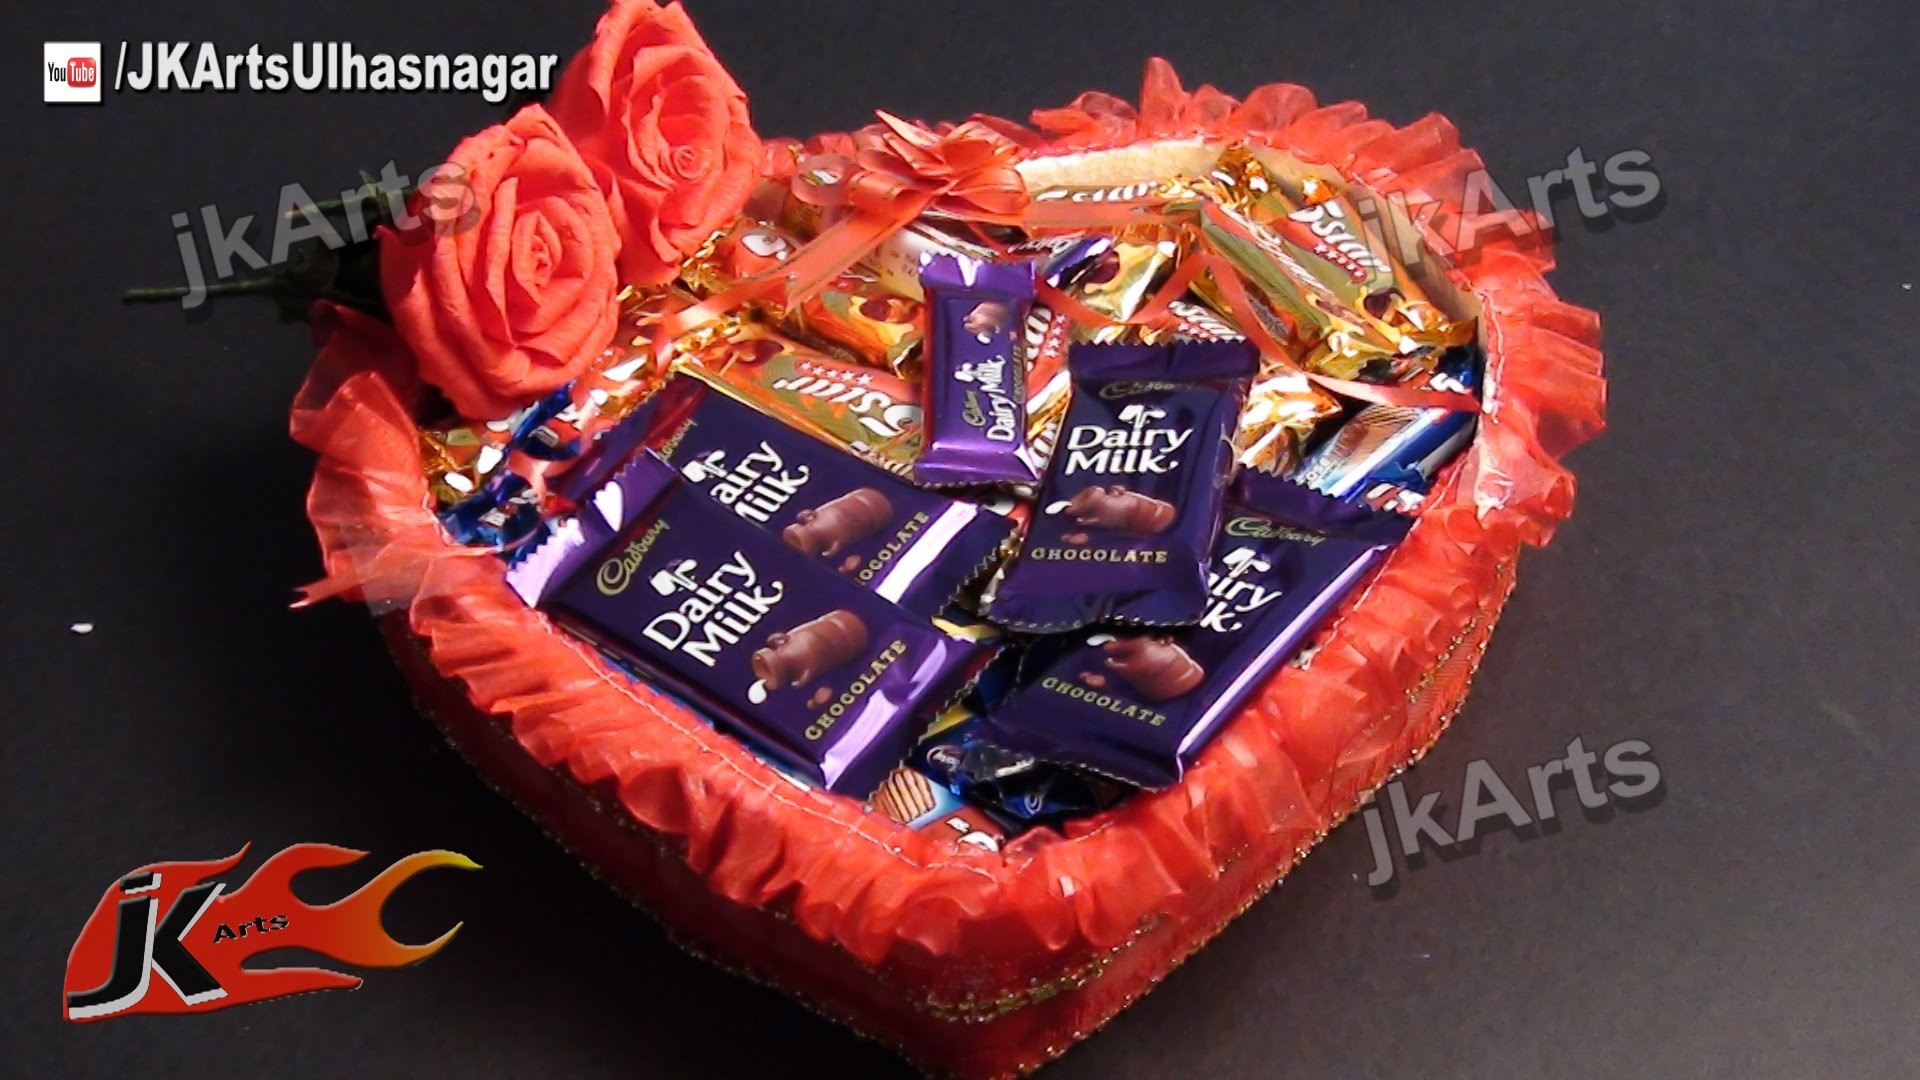 DIY Gift Idea | Chocolate Gift Basket (How to make) | JK Arts 481